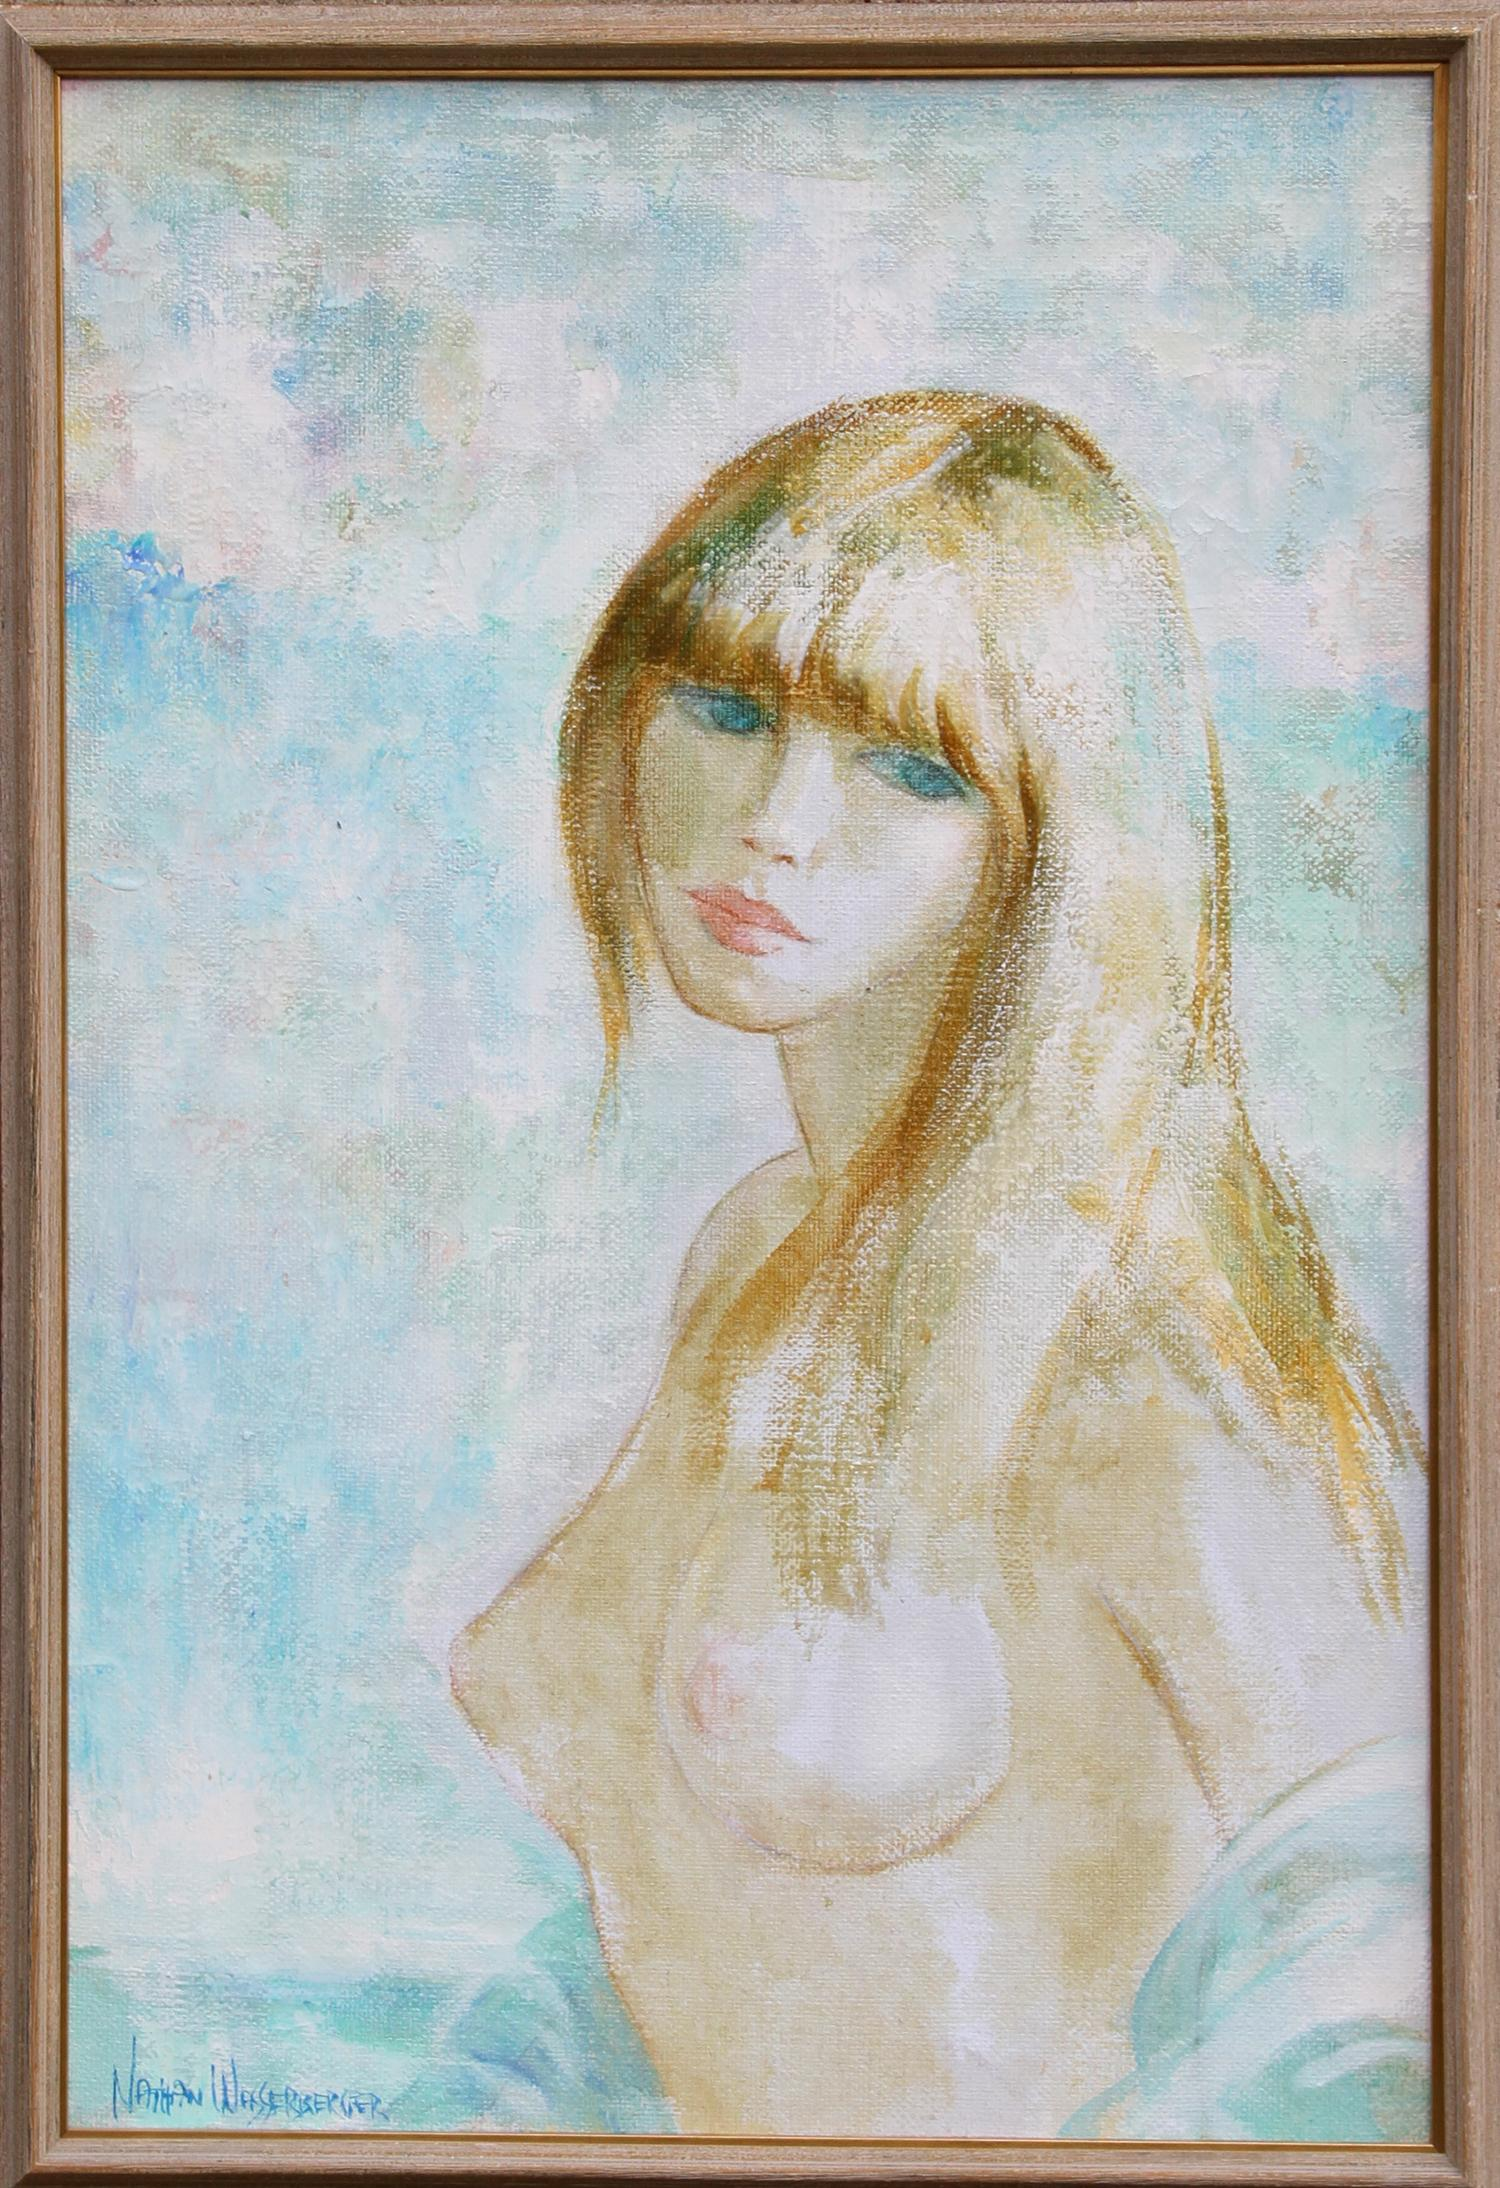 Blonde Nude, Oil Painting by Nathan Wasserberger